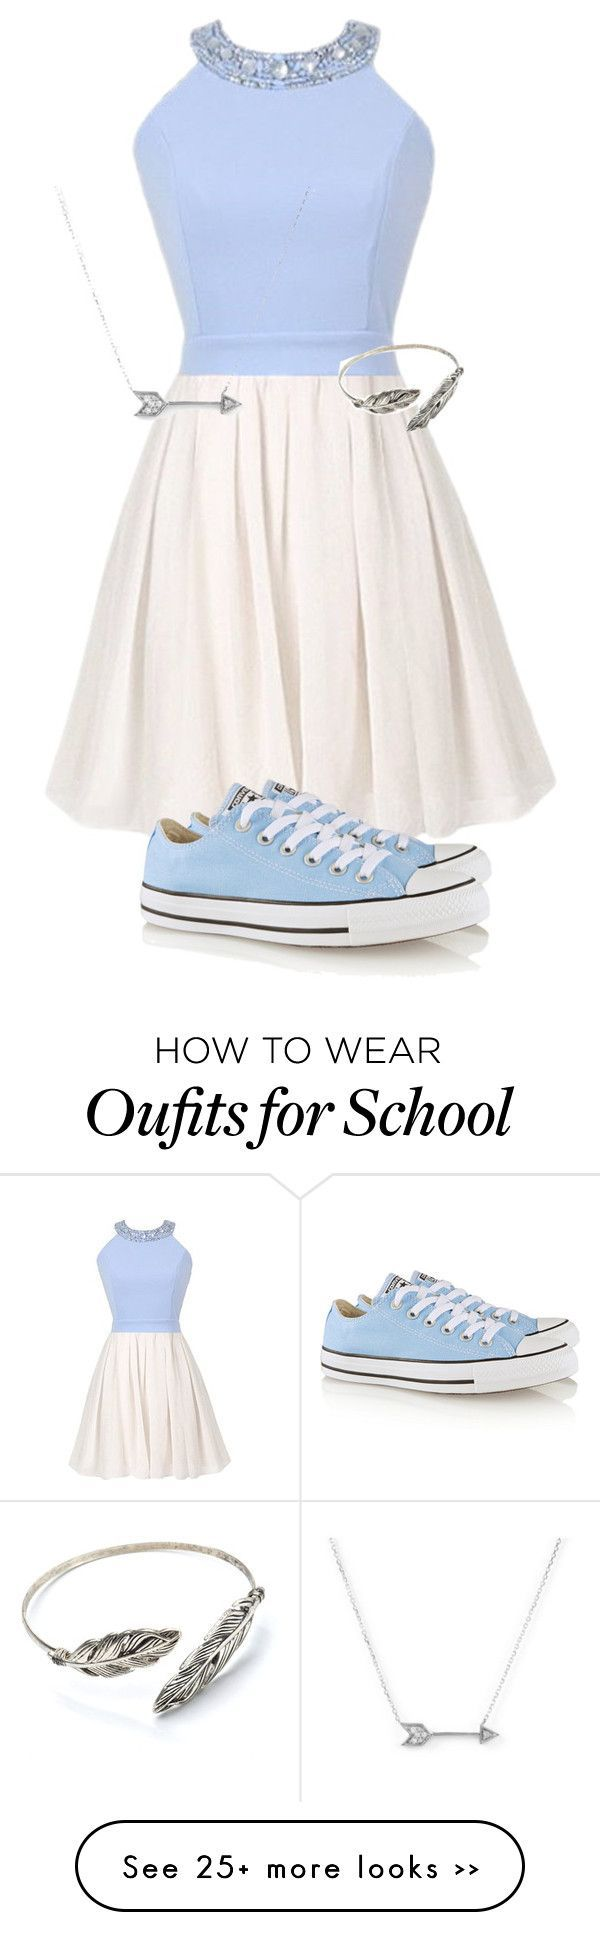 Image result for flattering dress for high school dance outfitsuc